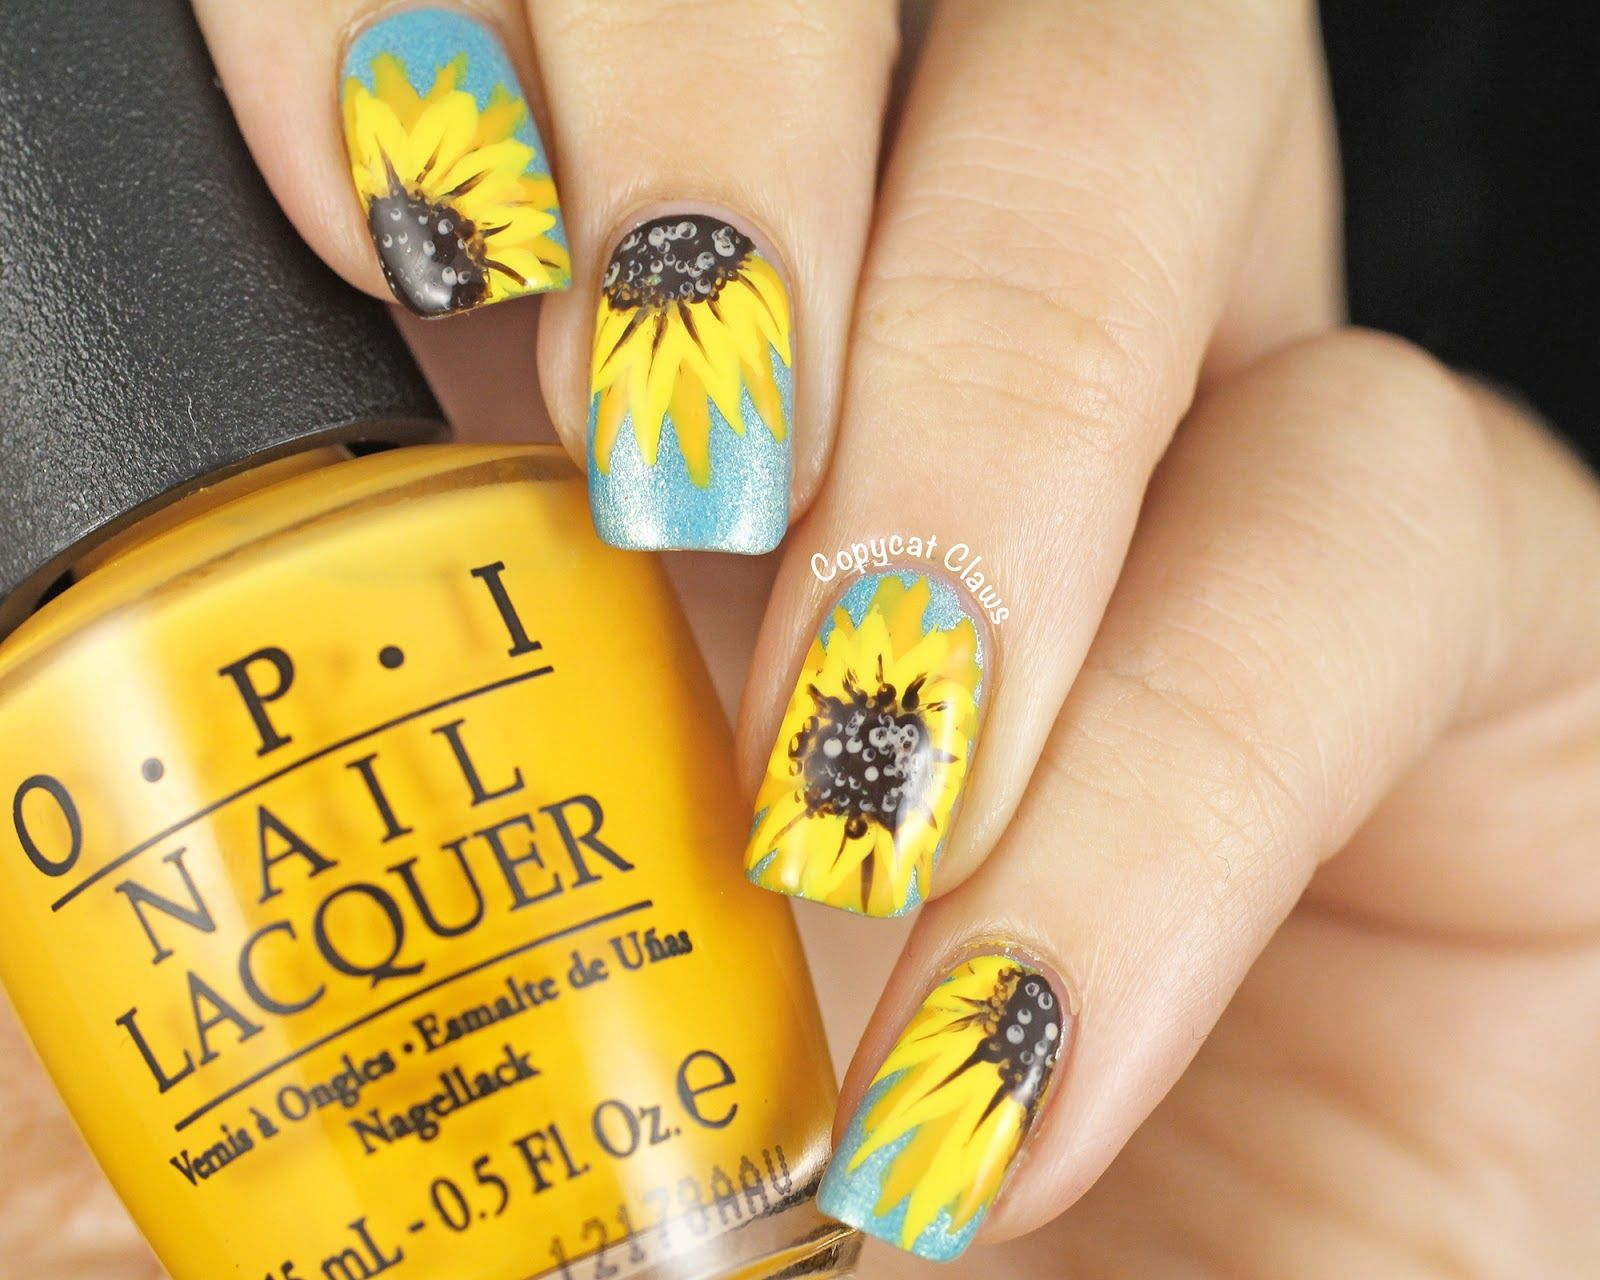 31DC2014 - Yellow Nails - Sunflower Nail Art (Copycat Claws ...